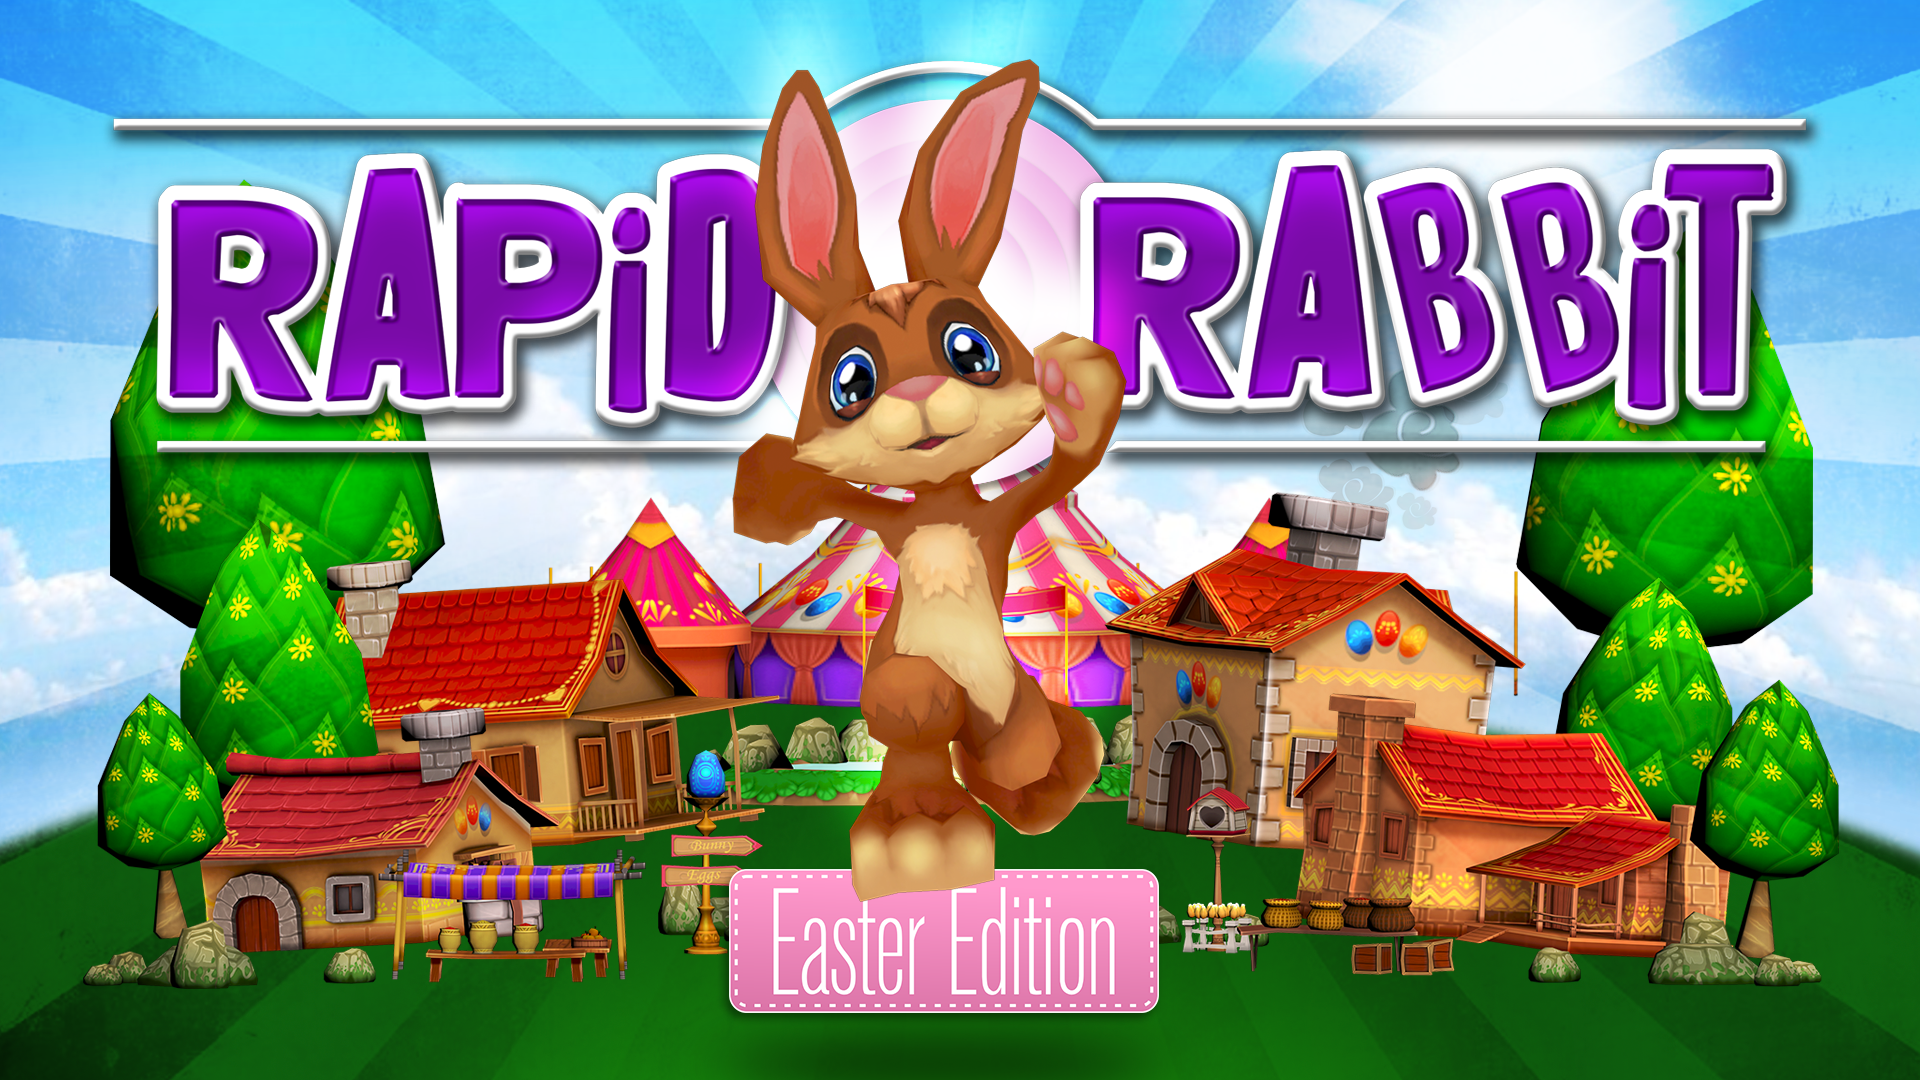 Rapid Rabbit - Easter Edition